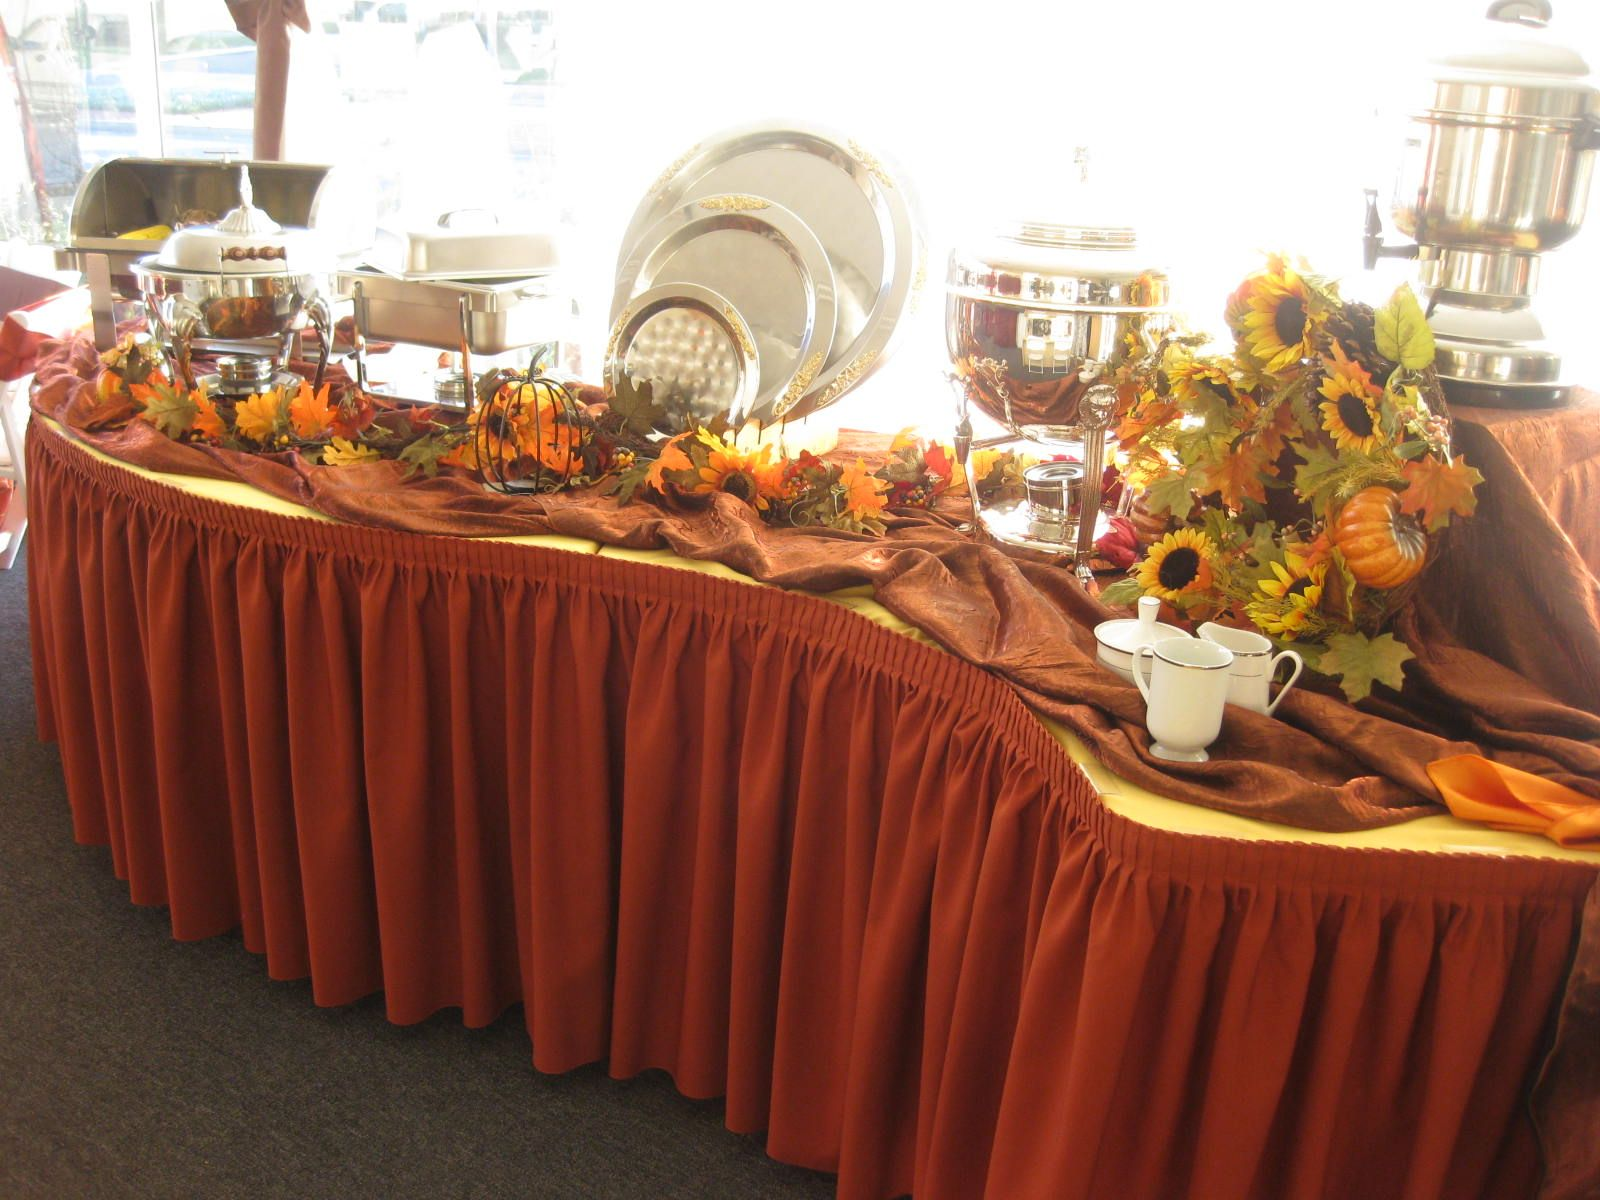 Christmas Buffet Table Decorations Pictures - Thanksgiving Buffet Table Shown